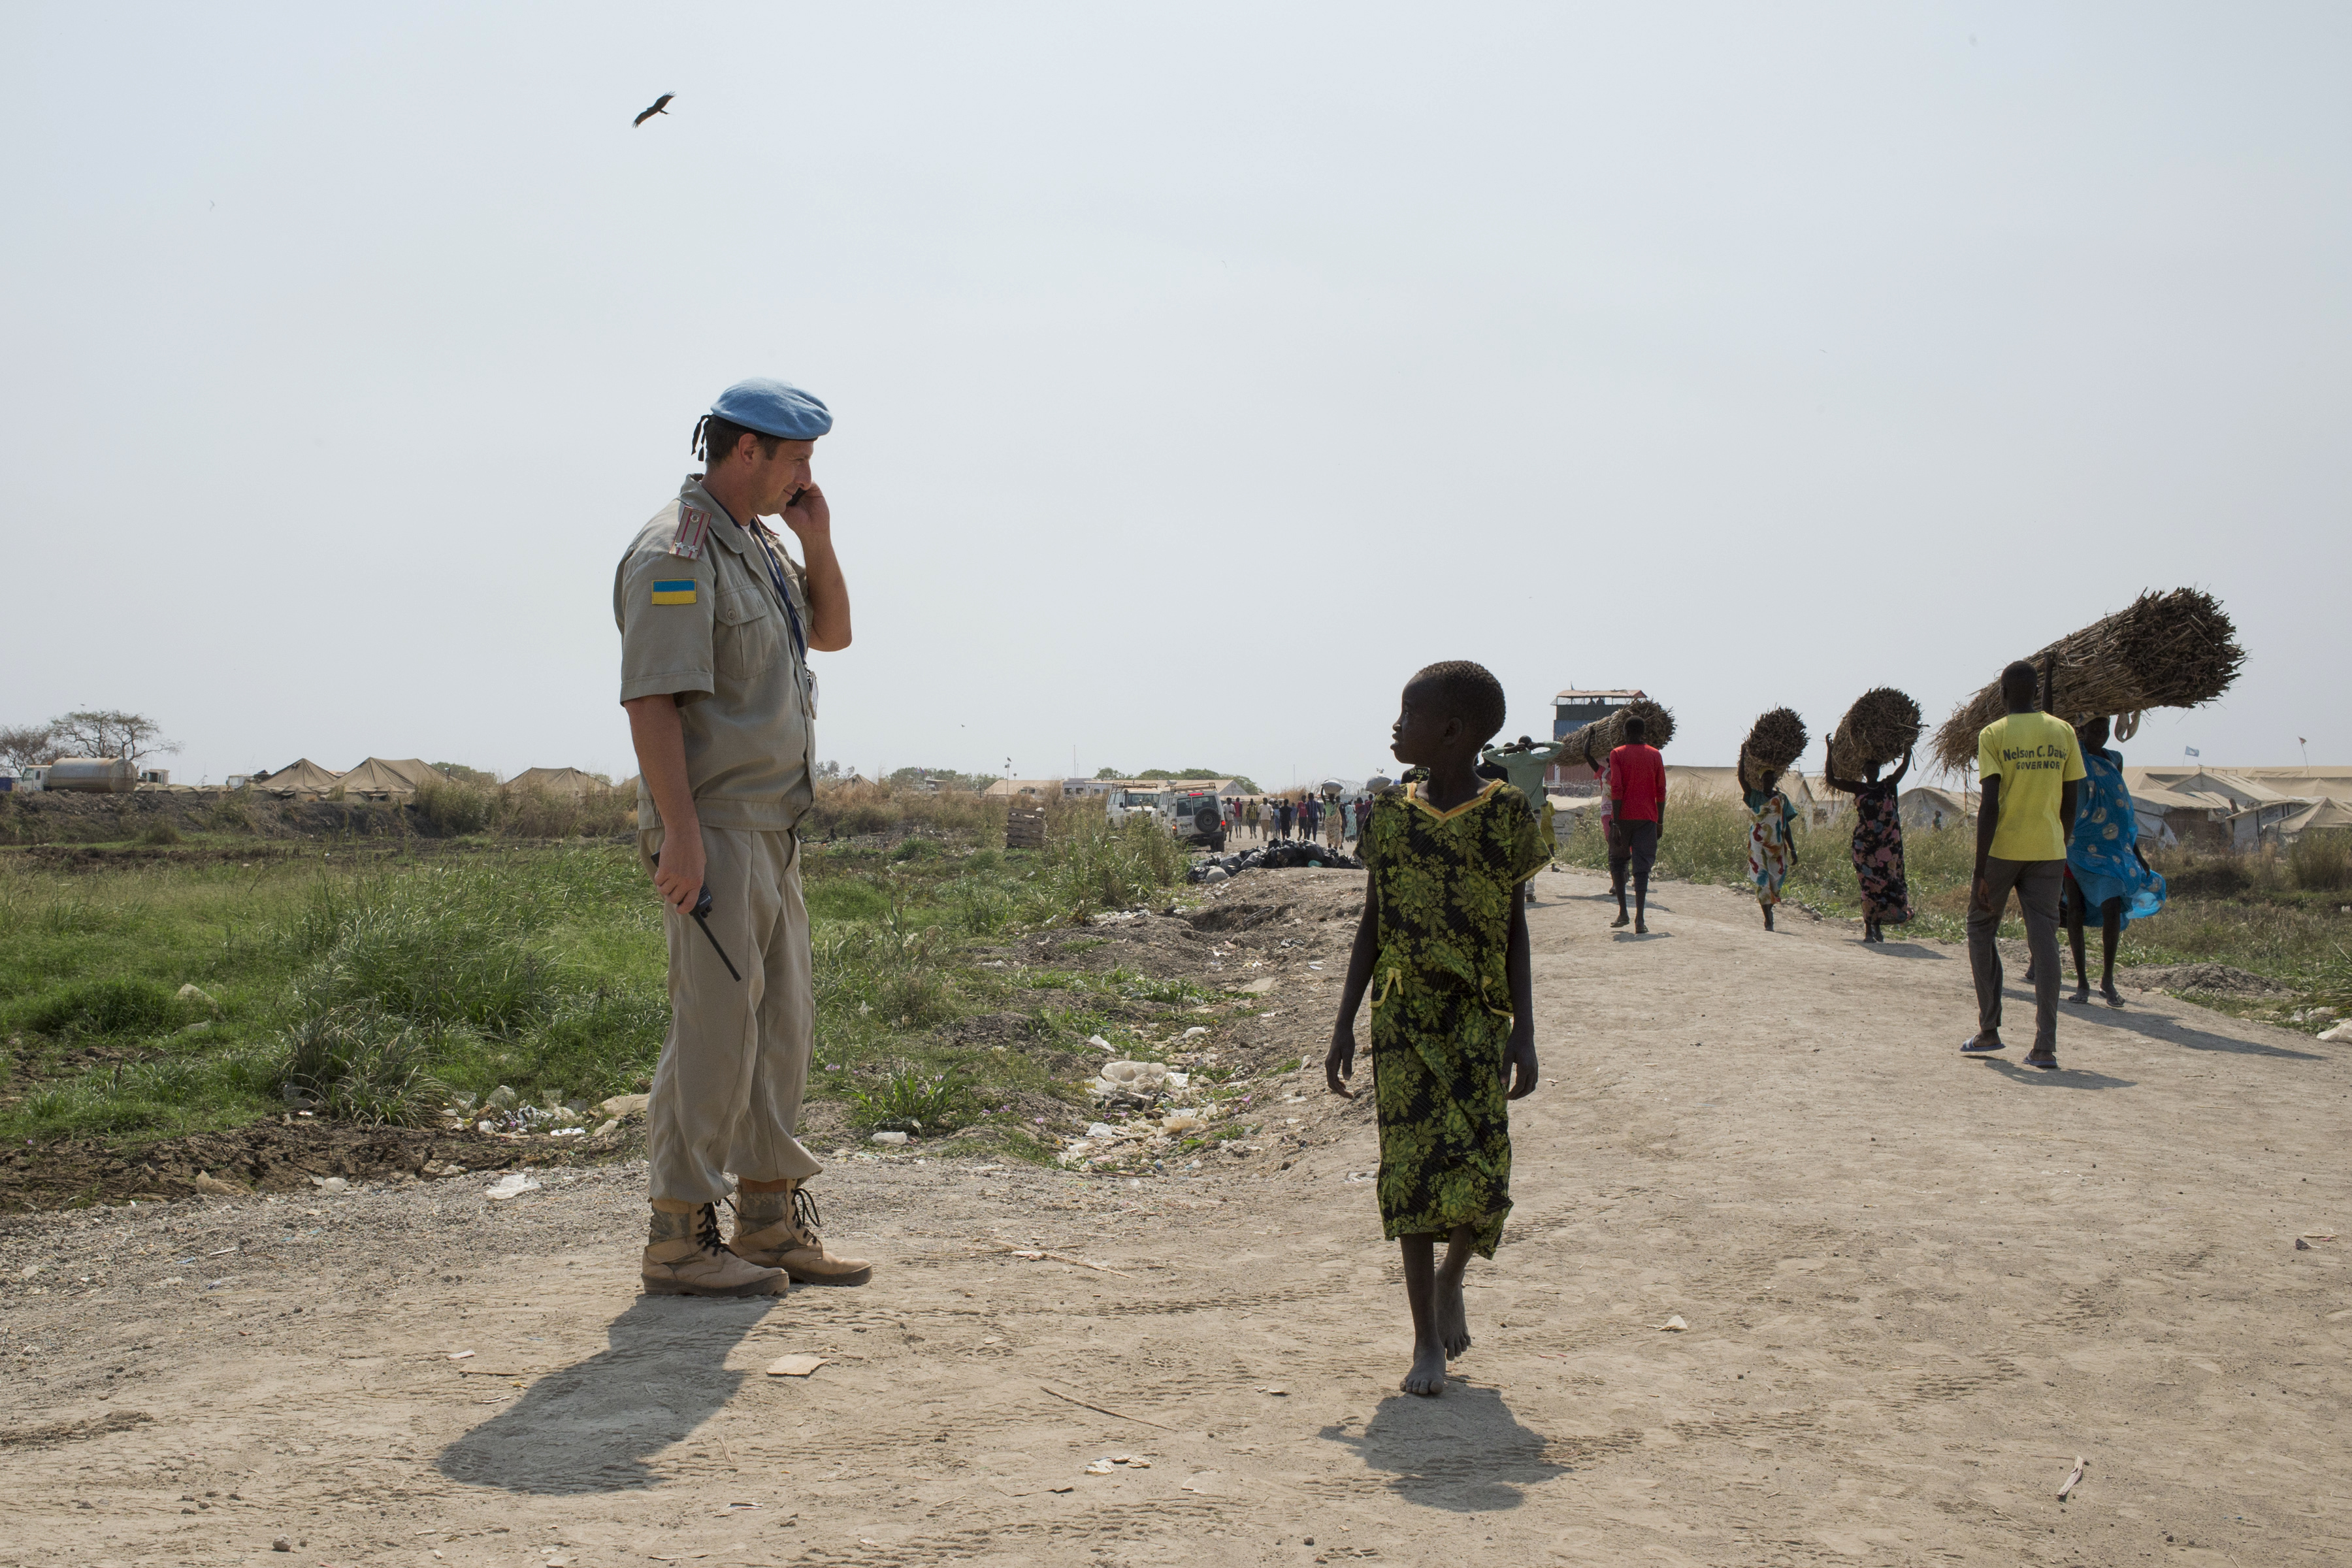 Ivan Simonovic, United Nations Assistant Secretary-General for Human Rights, visits South Sudan. UNPOL and FPU prepare for the arrival of the delegation at the POC site in Bentiu. Amnesty International